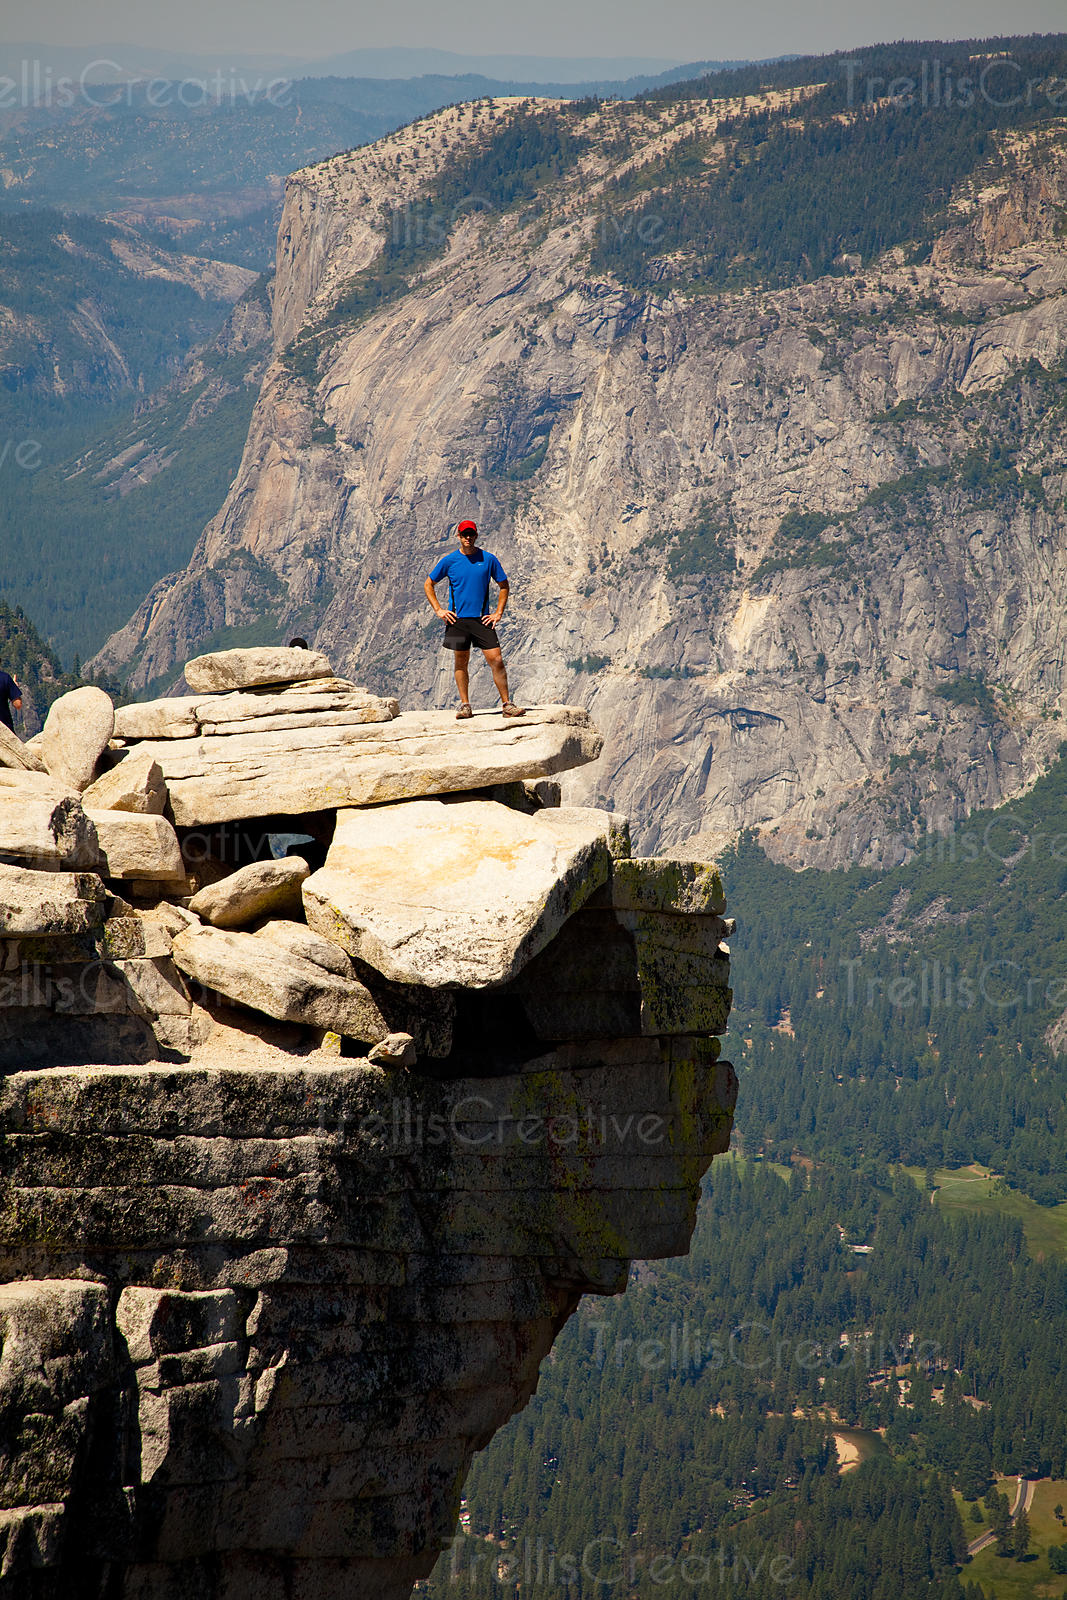 Jason Tinacci on the top of Half Dome, Yosemite National Park, California